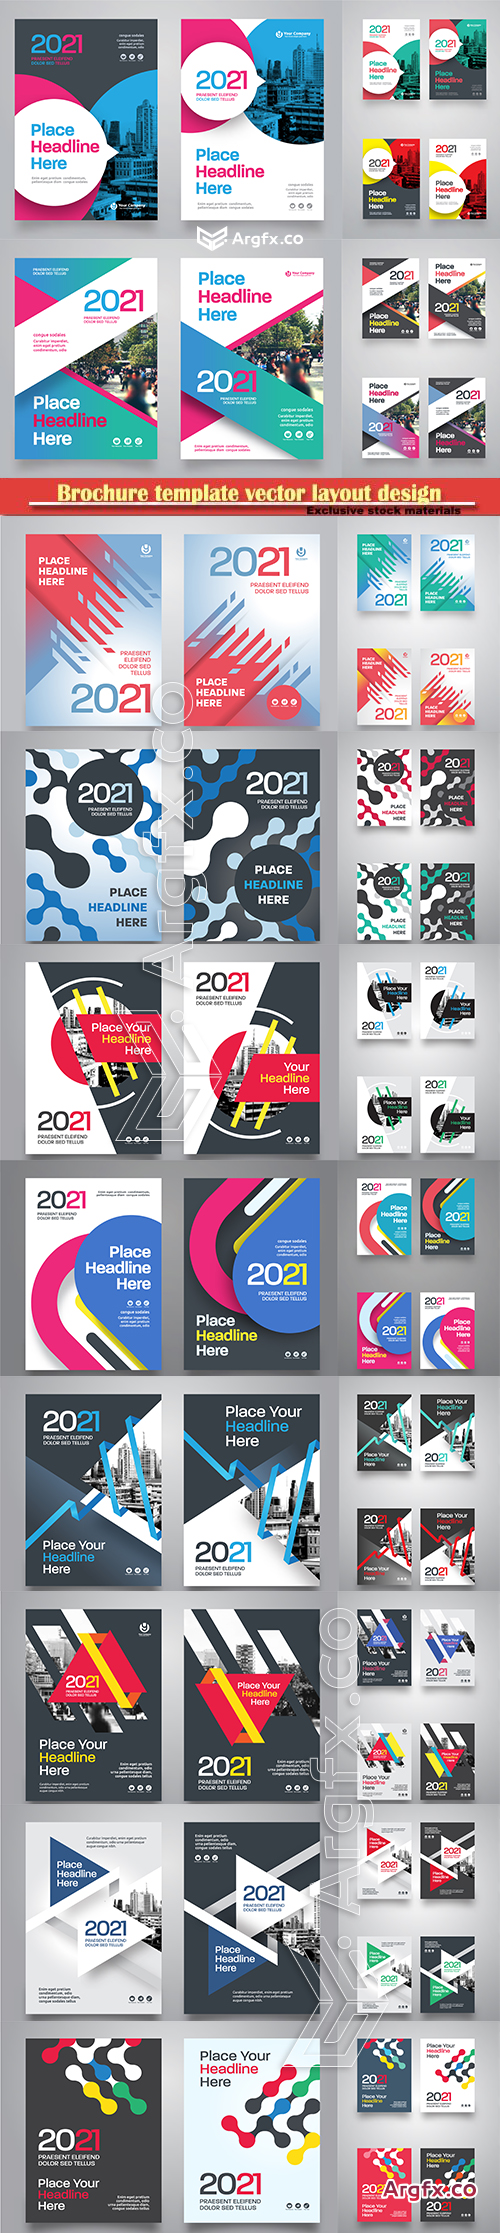 Brochure template vector layout design, corporate business annual report, magazine, flyer mockup # 145